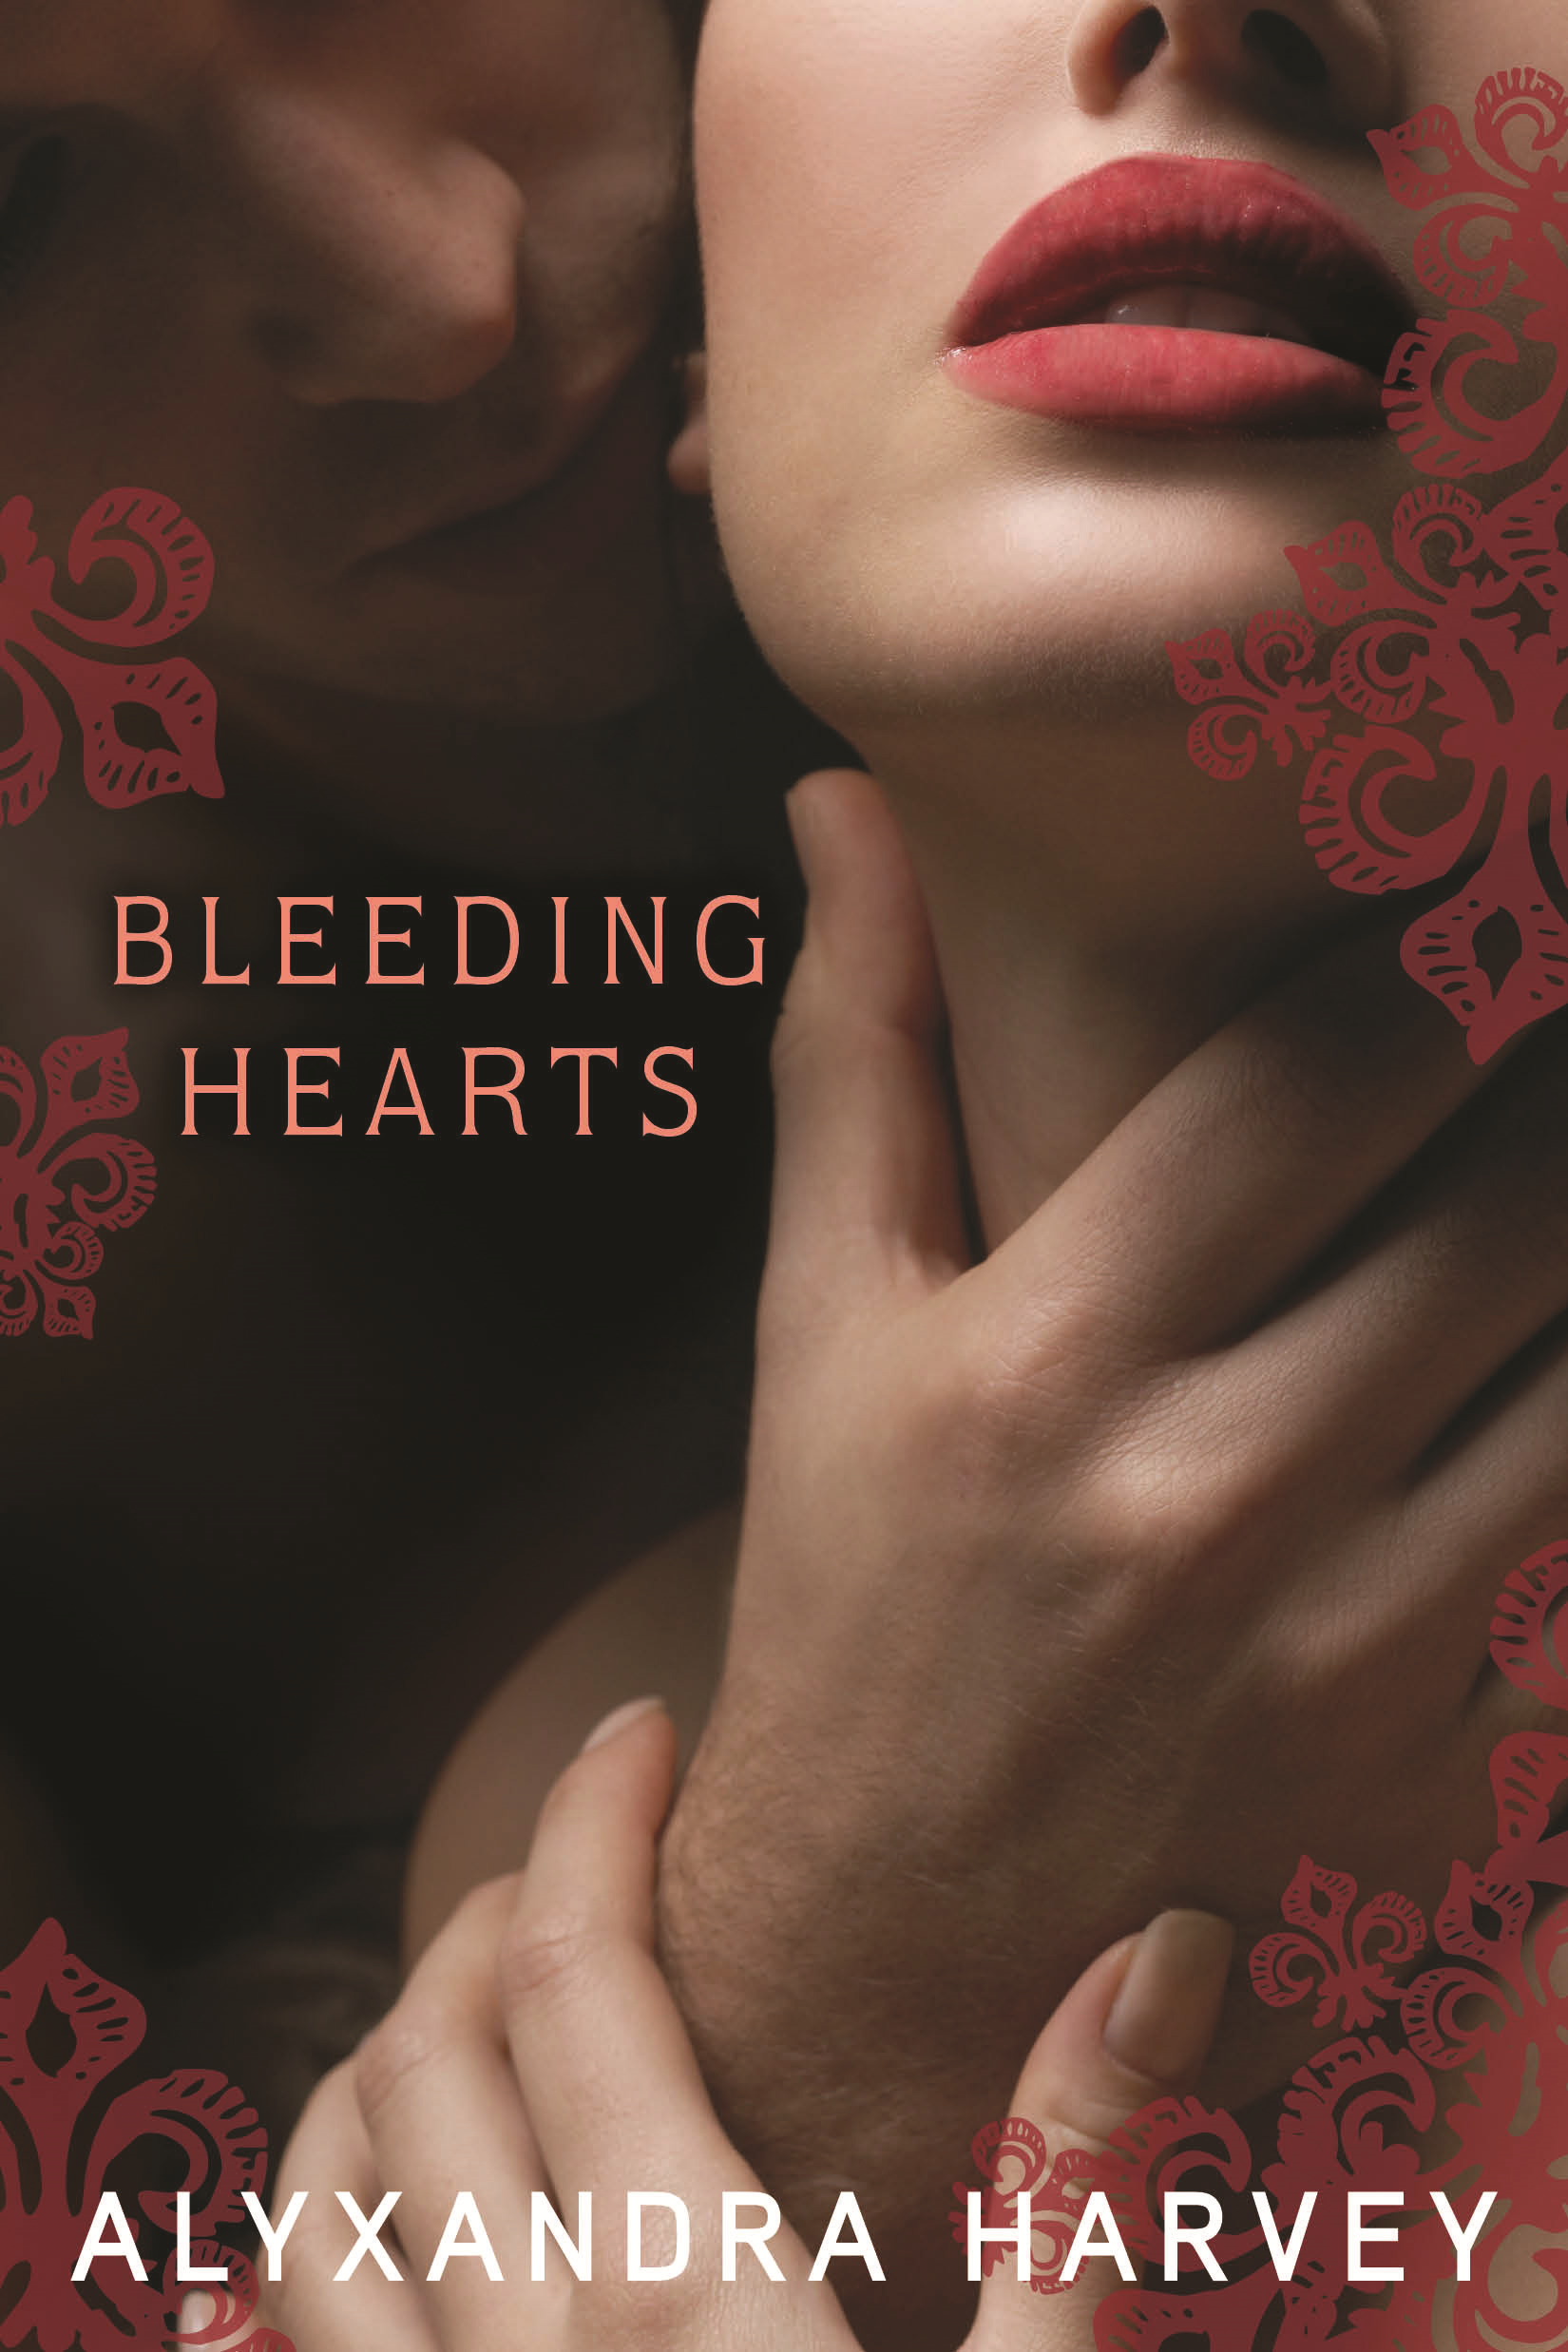 Bleeding Hearts By: Alyxandra Harvey